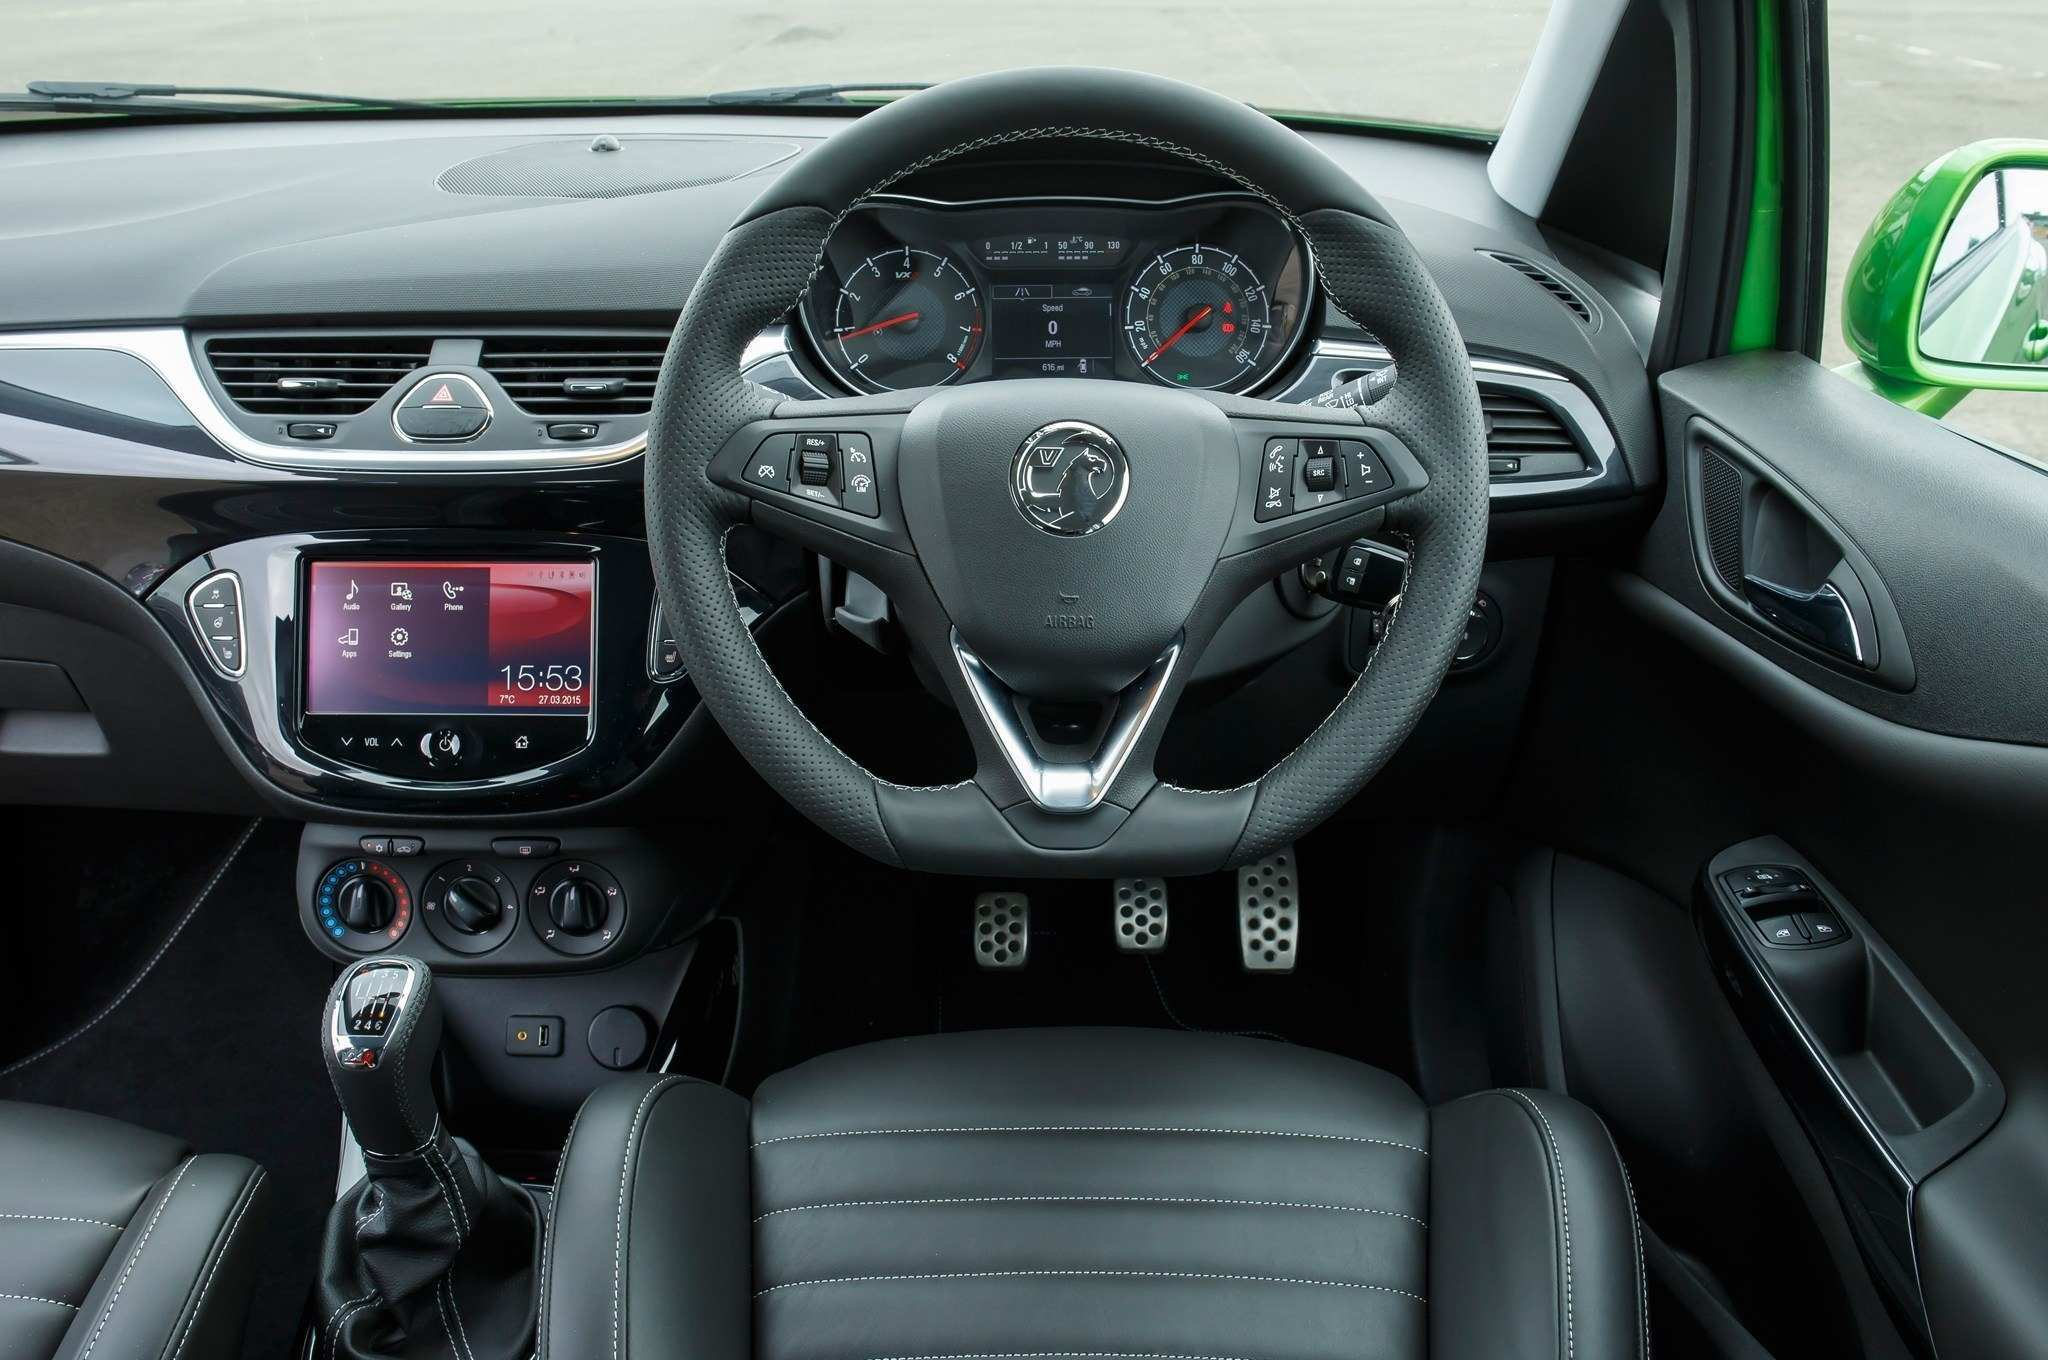 68 The Best 2020 Vauxhall Corsa VXR Specs And Review